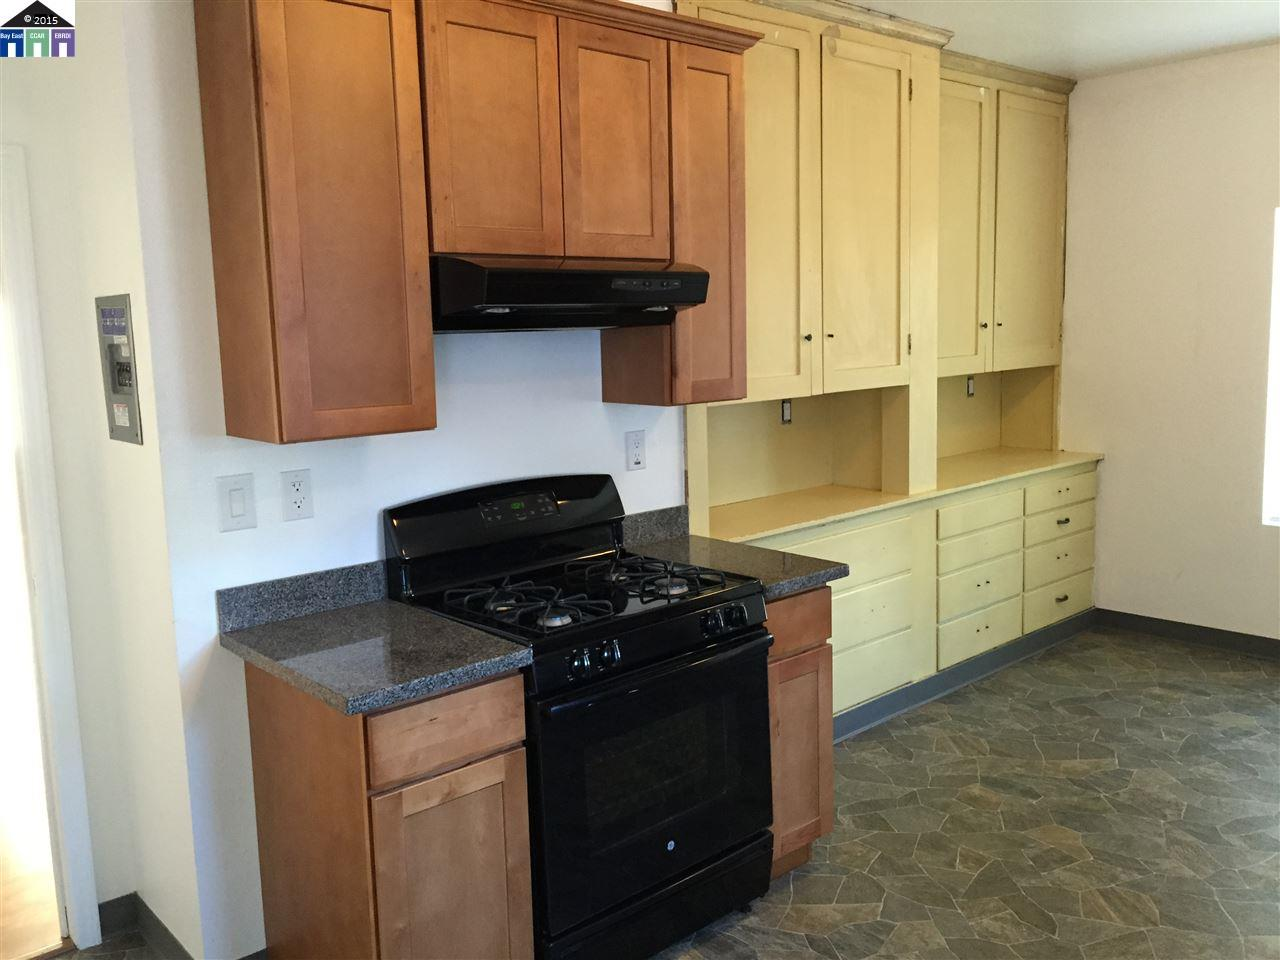 Additional photo for property listing at 2001 Prince Street  Berkeley, カリフォルニア 94703 アメリカ合衆国